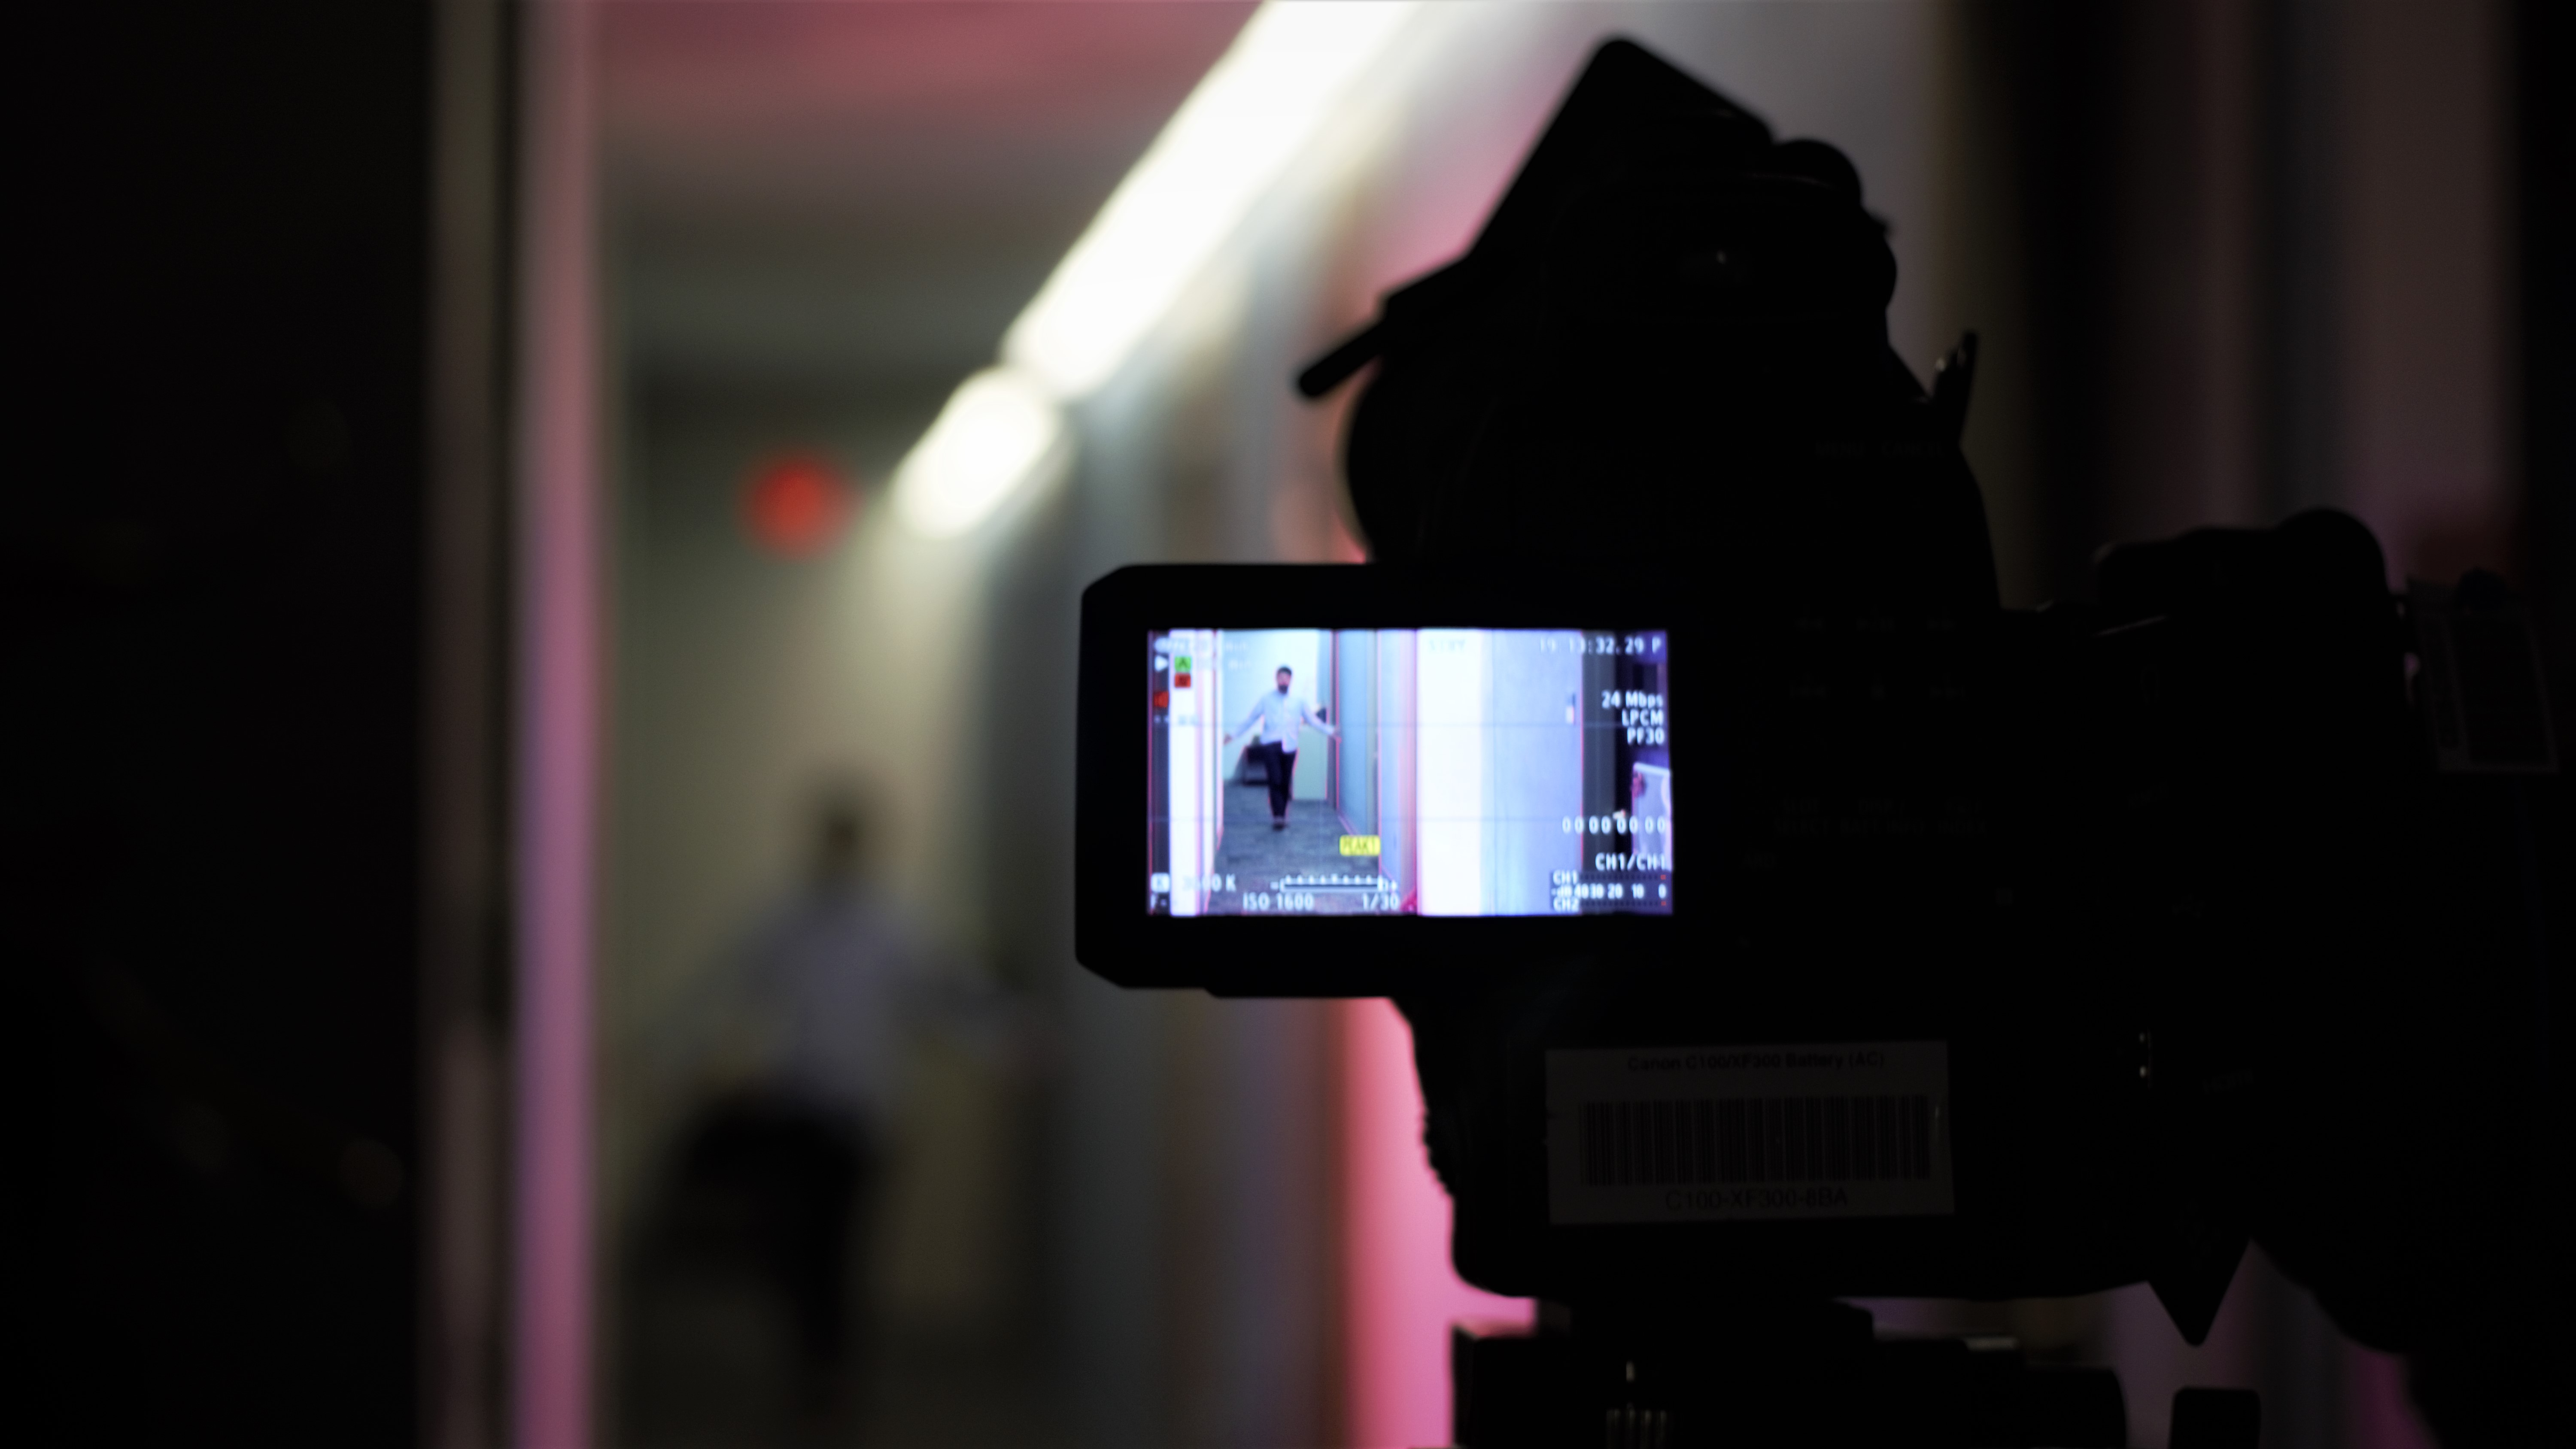 camera recording a scene of person in hallway